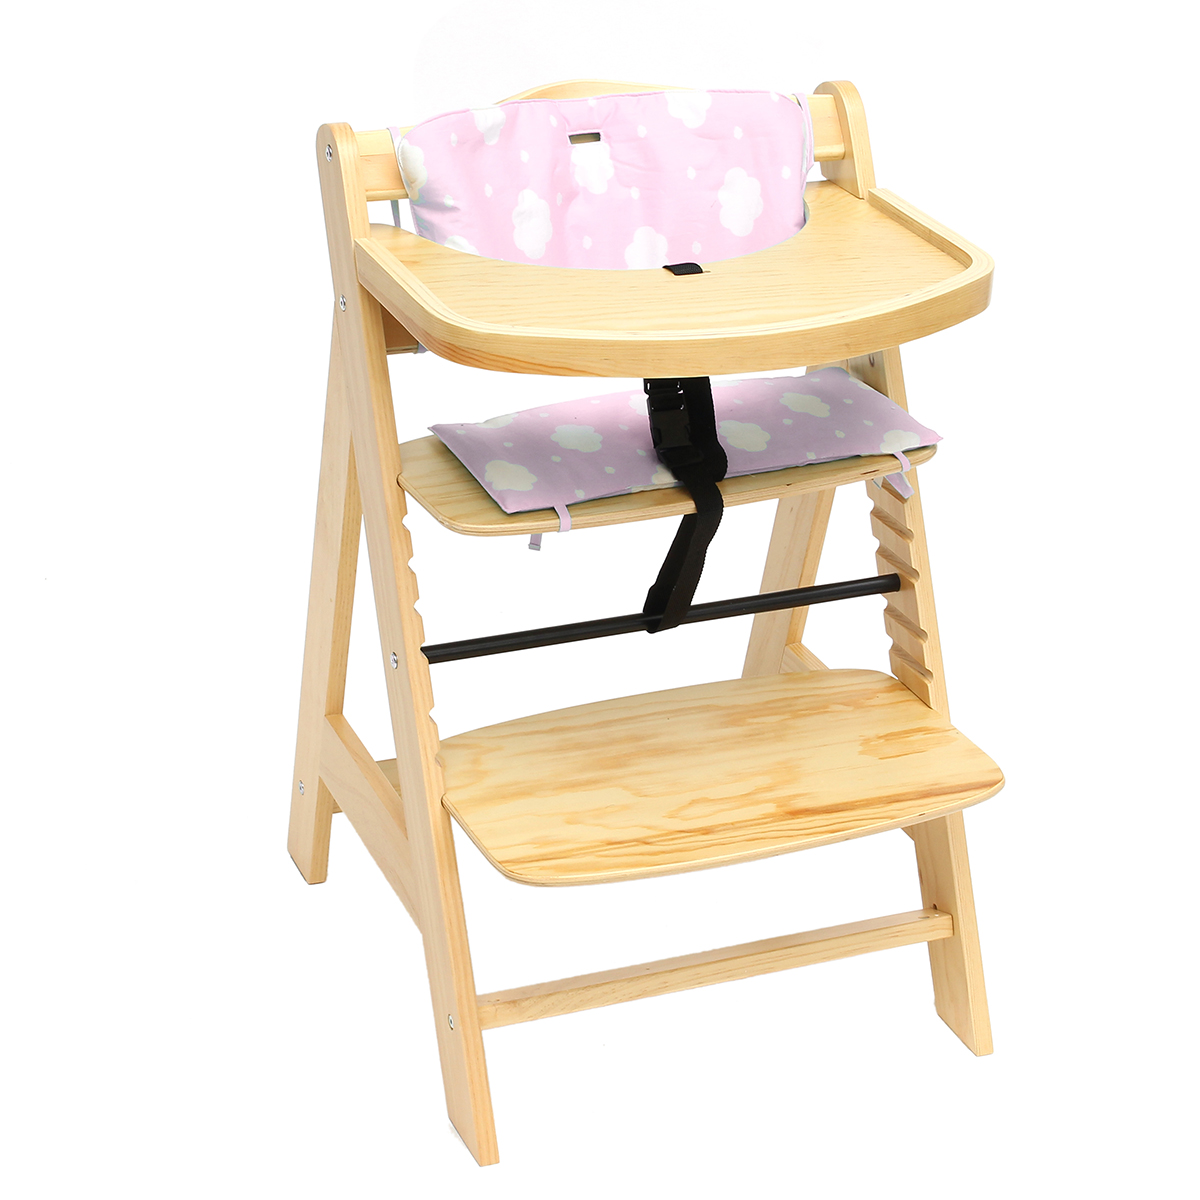 3 in 1 baby wooden high chair convertible table seat feeding tray bar highchair ebay. Black Bedroom Furniture Sets. Home Design Ideas